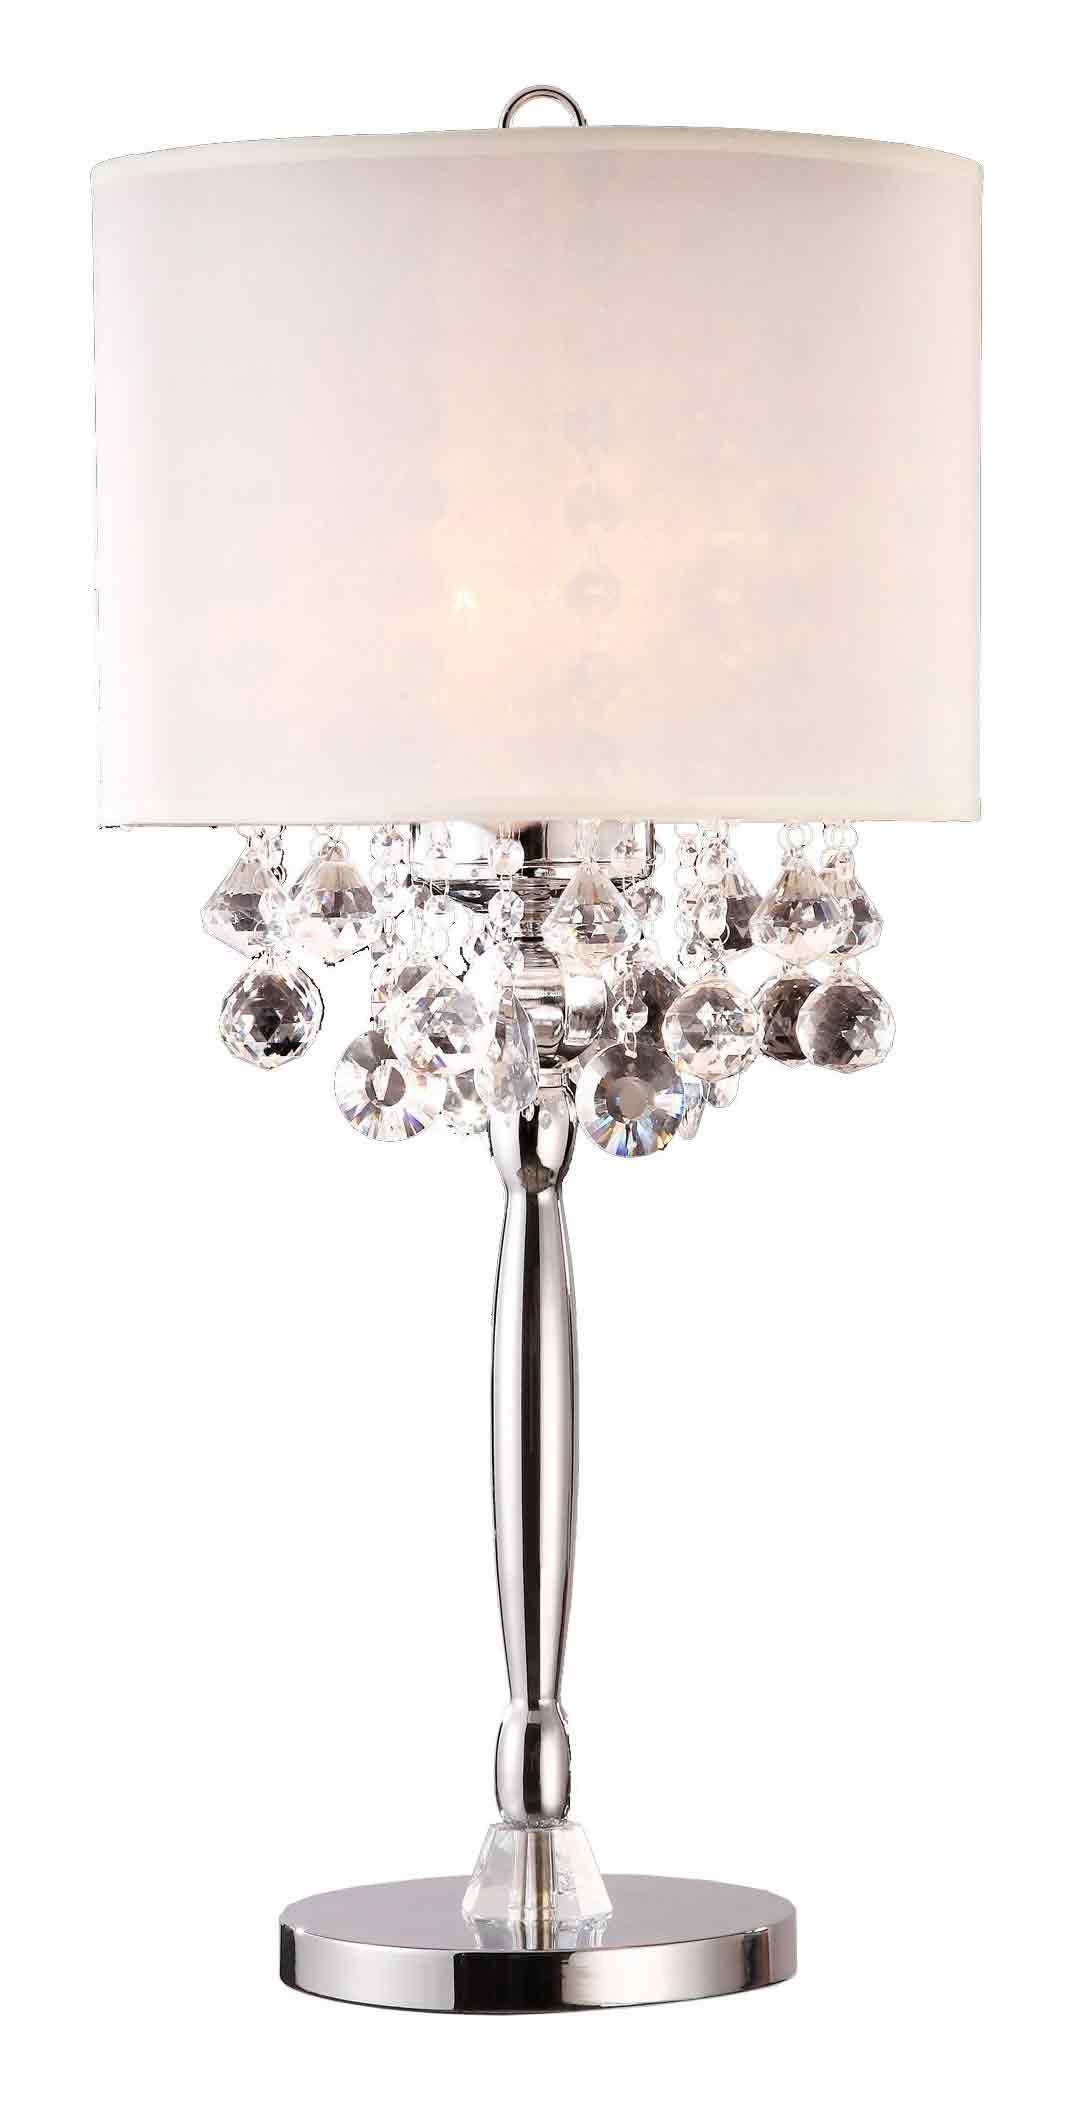 Ore International K-5110T 29.5-Inch Crystal Table Lamp, Silver